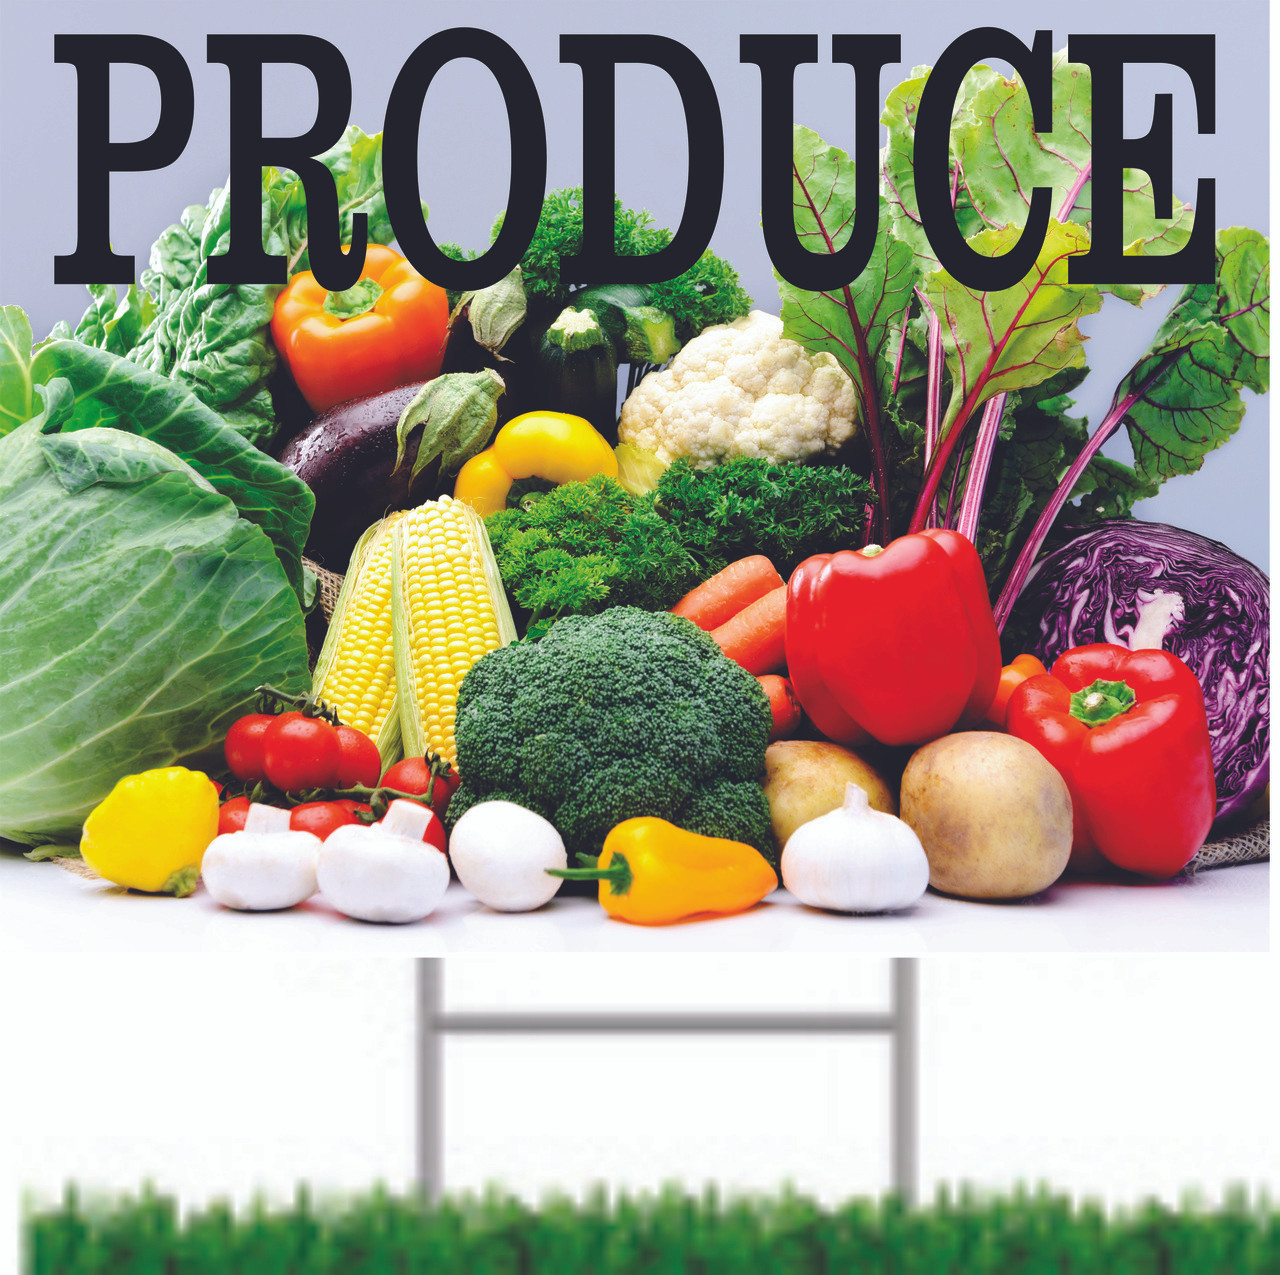 Produce Road Sign Great for Vegetable Stands or Farmers Markets